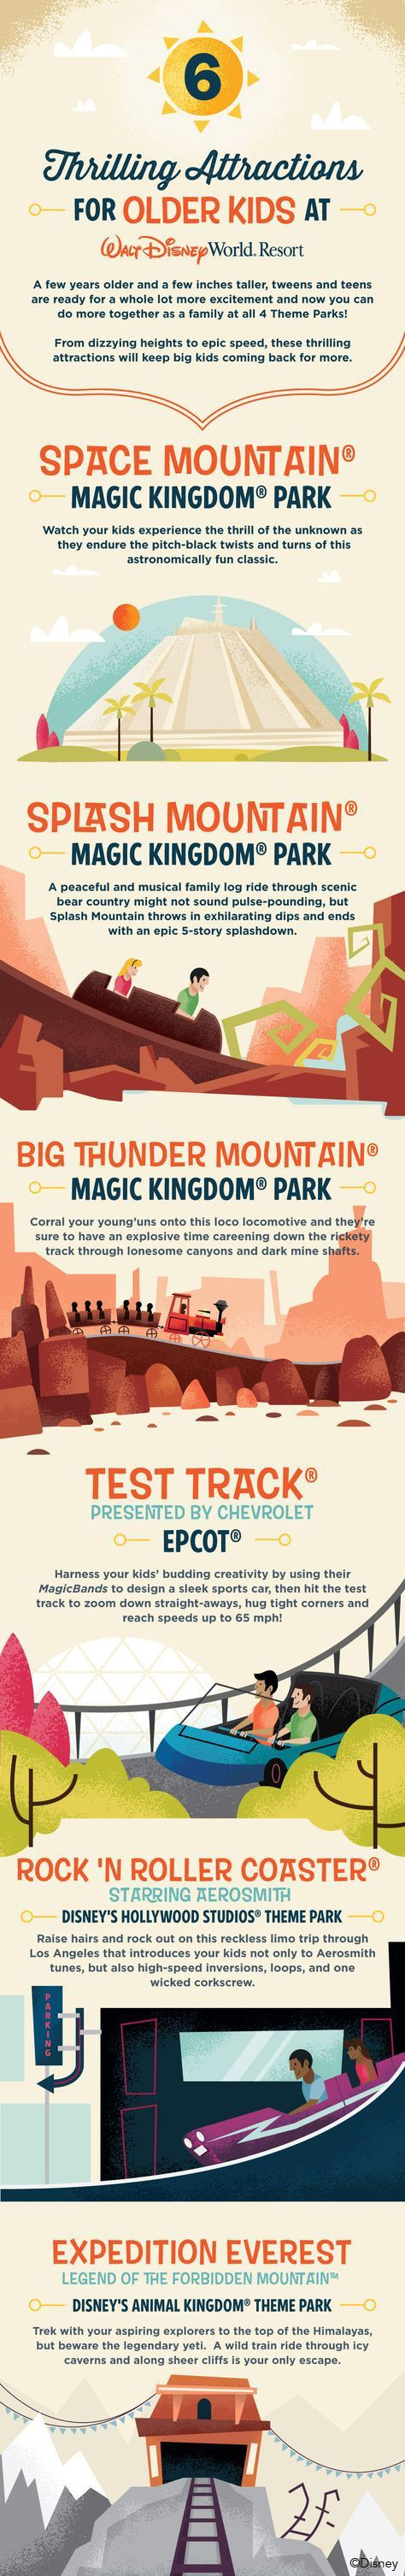 Uncategorized Love Test Kids your older kids will love these thrilling attractions on walt disney world vacation from space mountain to test track e